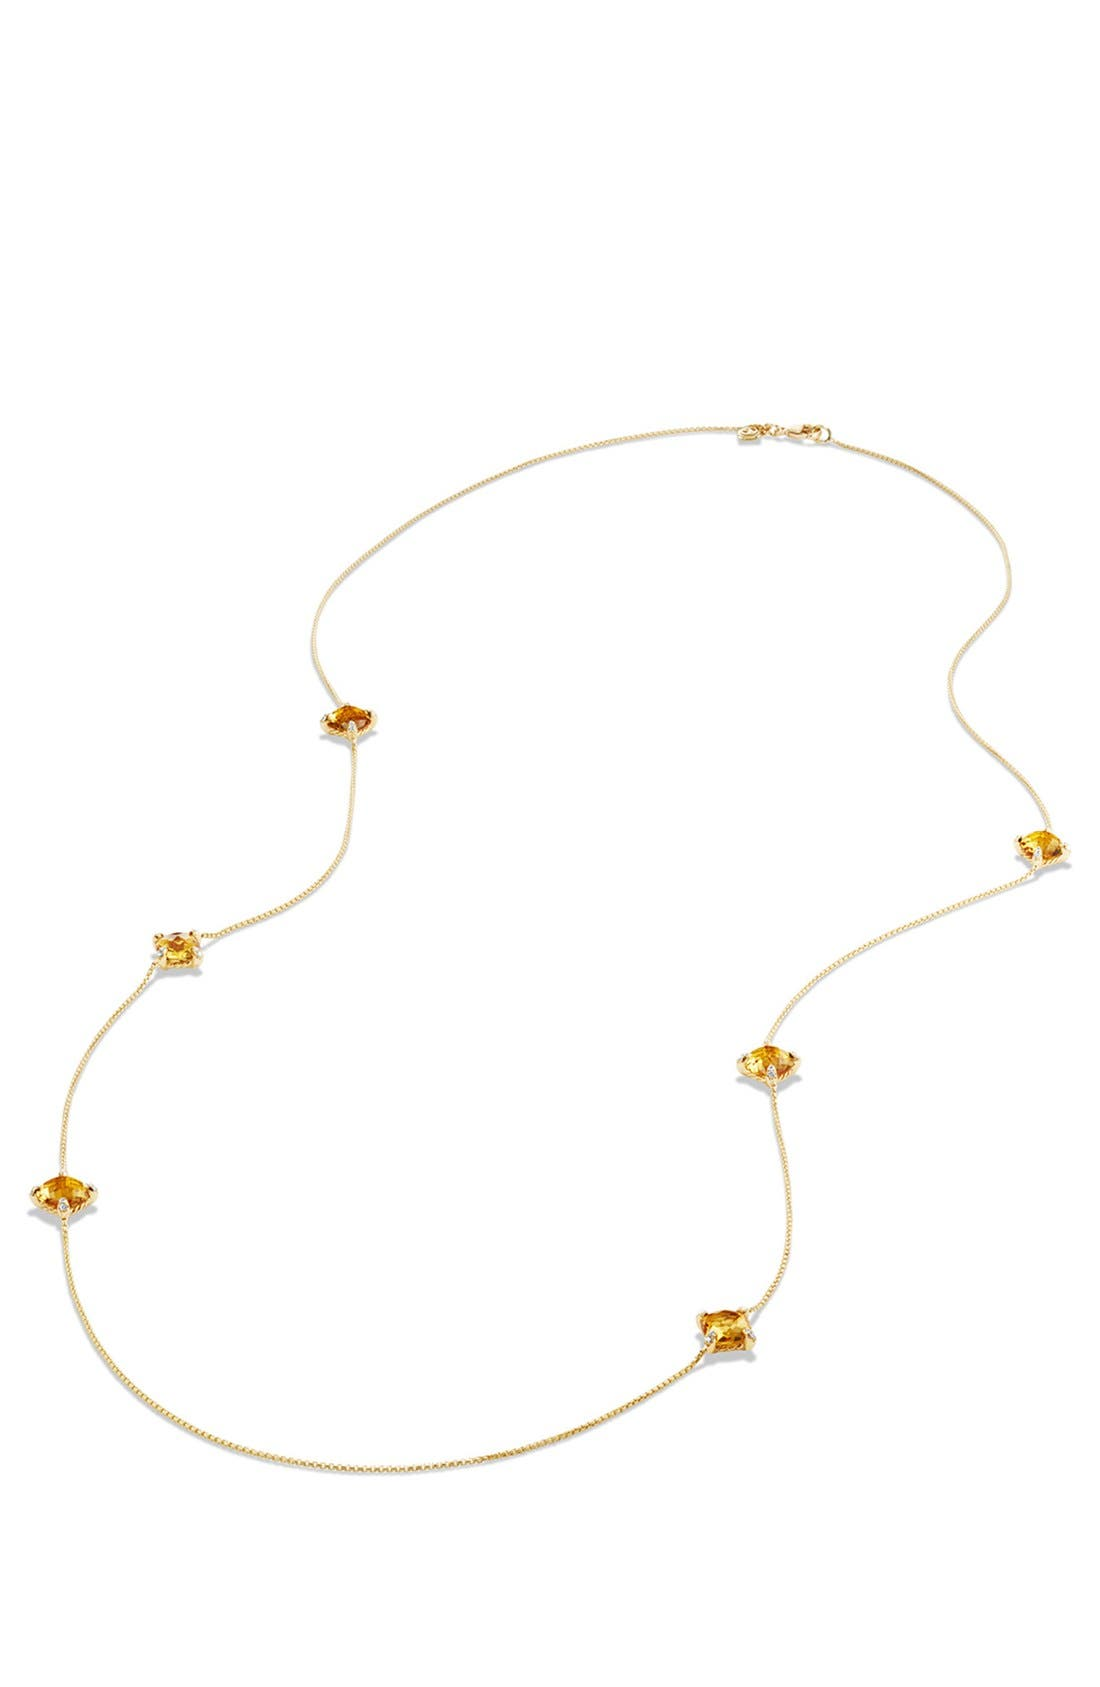 'Châtelaine' Long Semiprecious Stone Necklace with Diamonds,                             Alternate thumbnail 3, color,                             Citrine